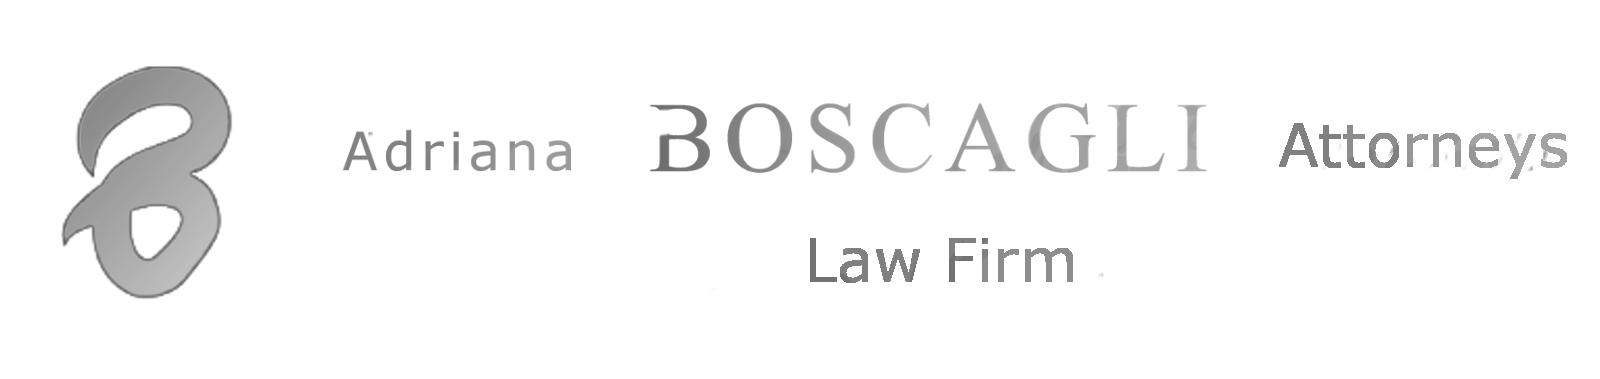 Boscagli Law Firm